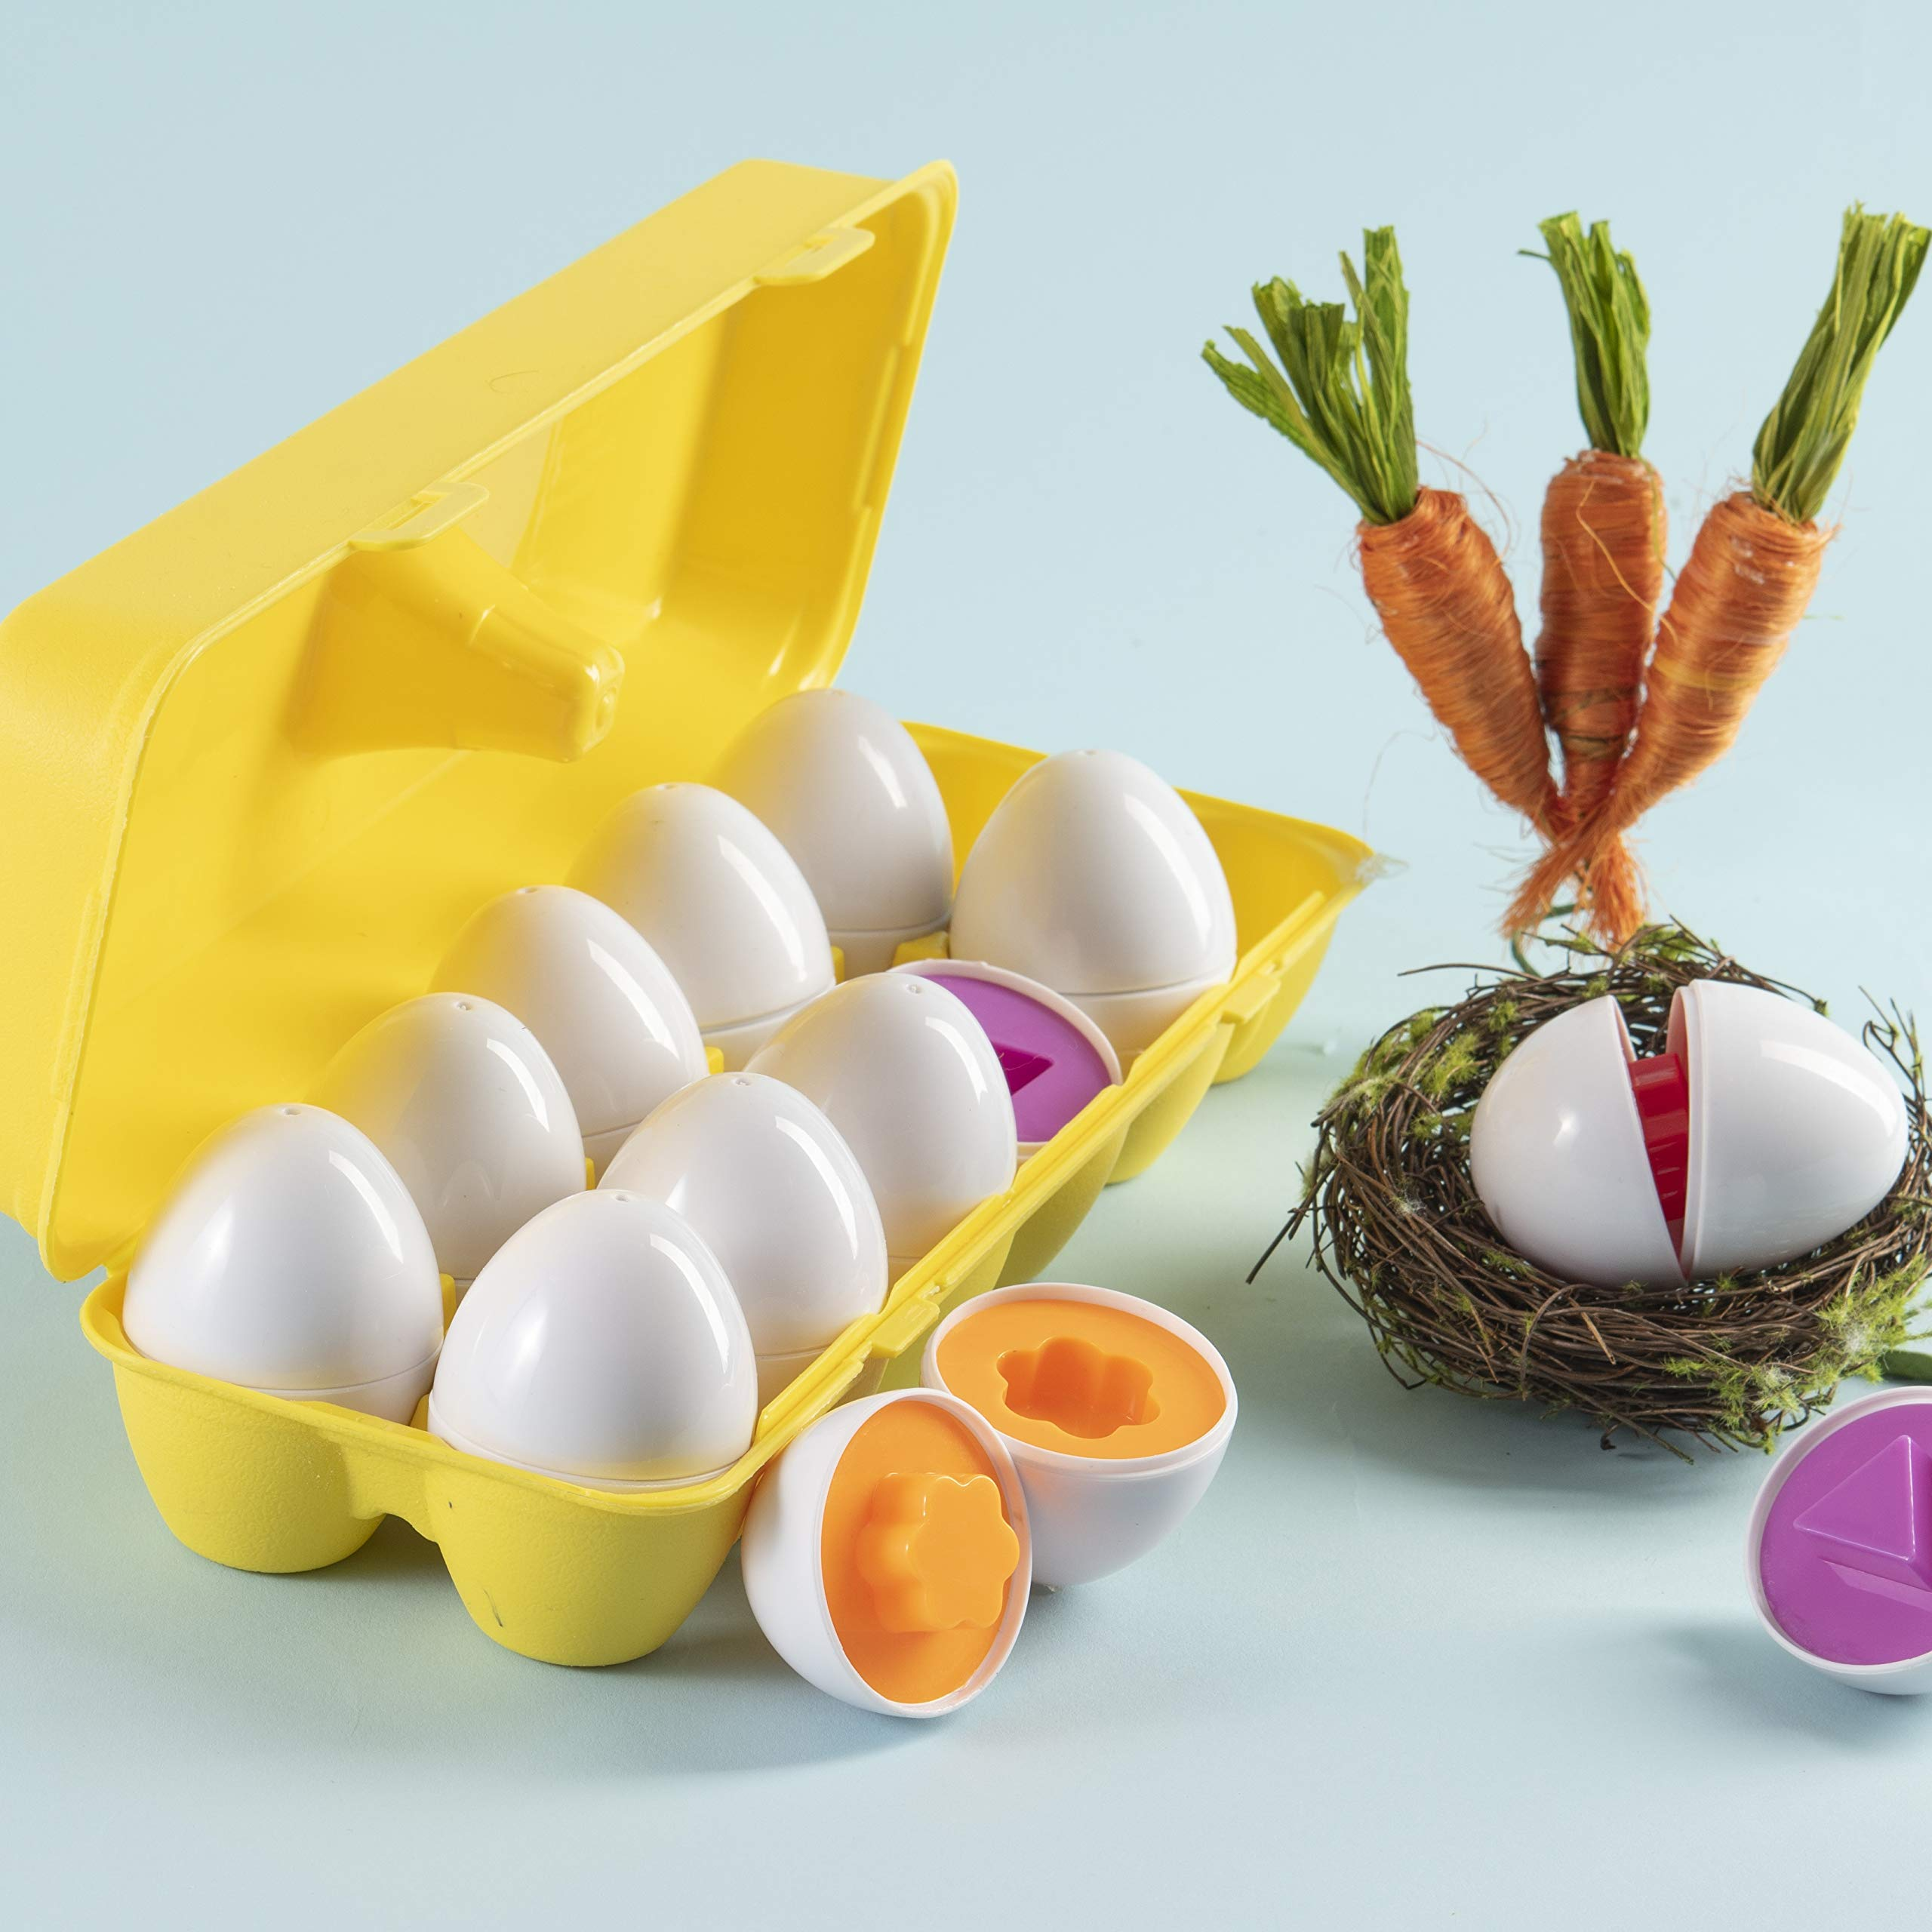 Prextex My First Find and Match Easter Matching Eggs with Yellow Eggs Holder - STEM Toys Educational Toy for Kids and Toddlers to Learn About Shapes and Colors Easter Gift by Prextex (Image #3)